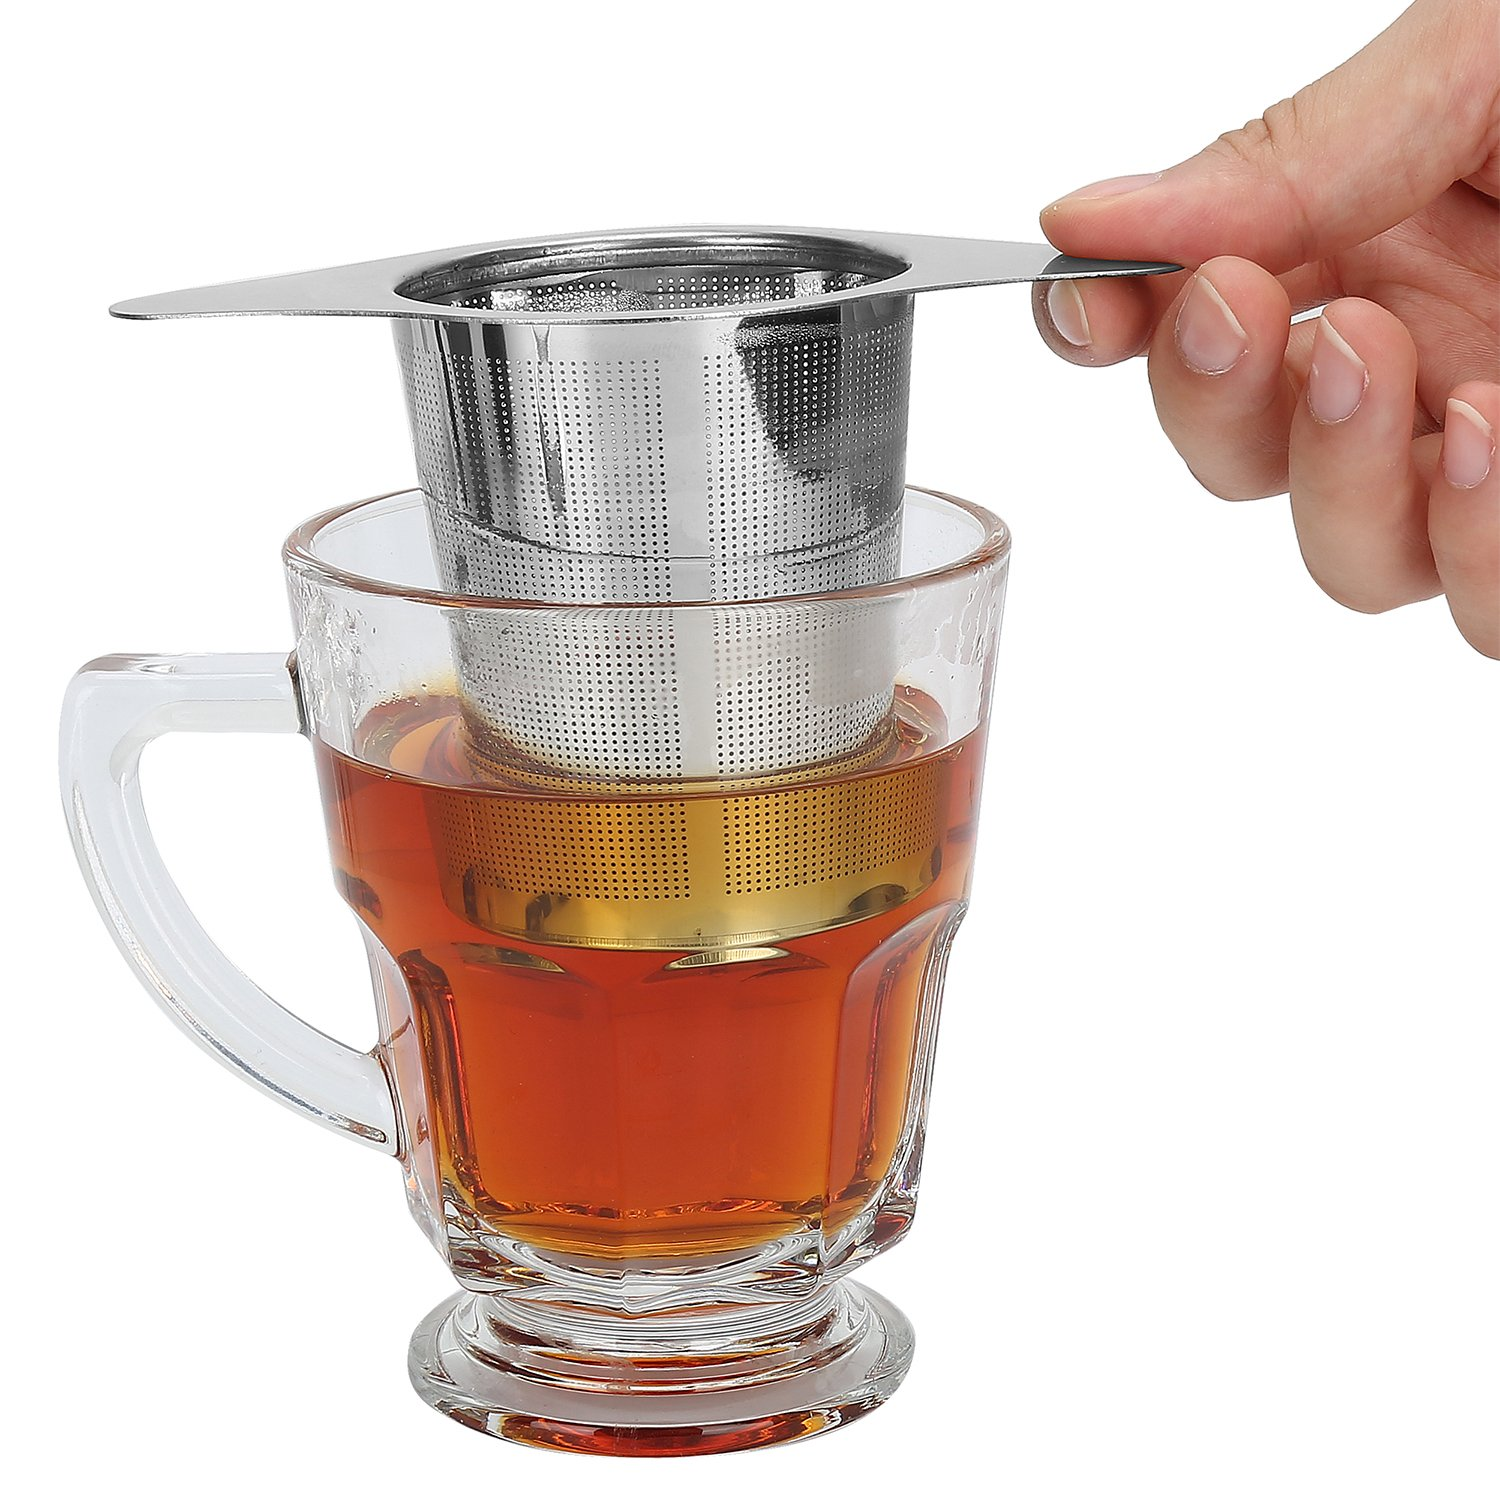 Tea Infuser,Tea Strainer,2 PACK 304 Stainless Steel Water Filter with Double Handles for Hanging on Teapots, Mugs, Cups to steep Loose Leaf Tea and Coffee,Cold Brew Coffee Maker. FDA Approved. by INTEYE (Image #7)